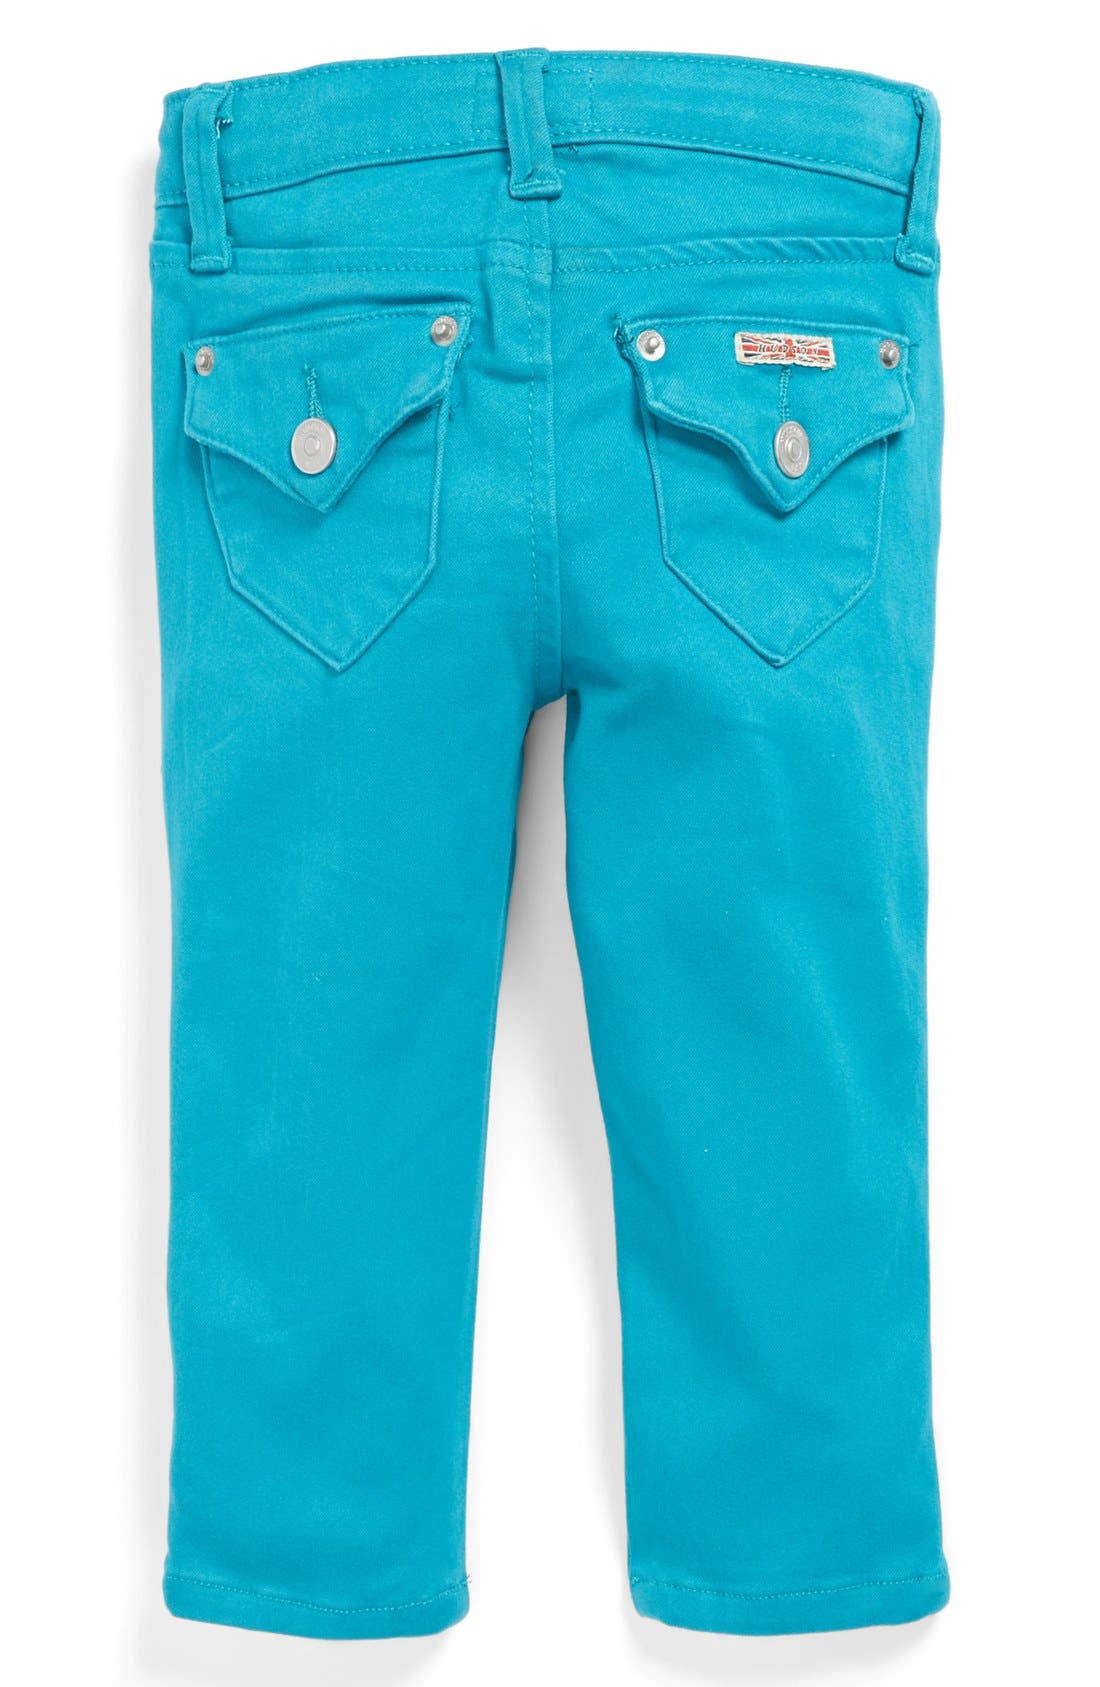 Main Image - Hudson Kids 'Collin' Skinny Jeans (Baby Girls)